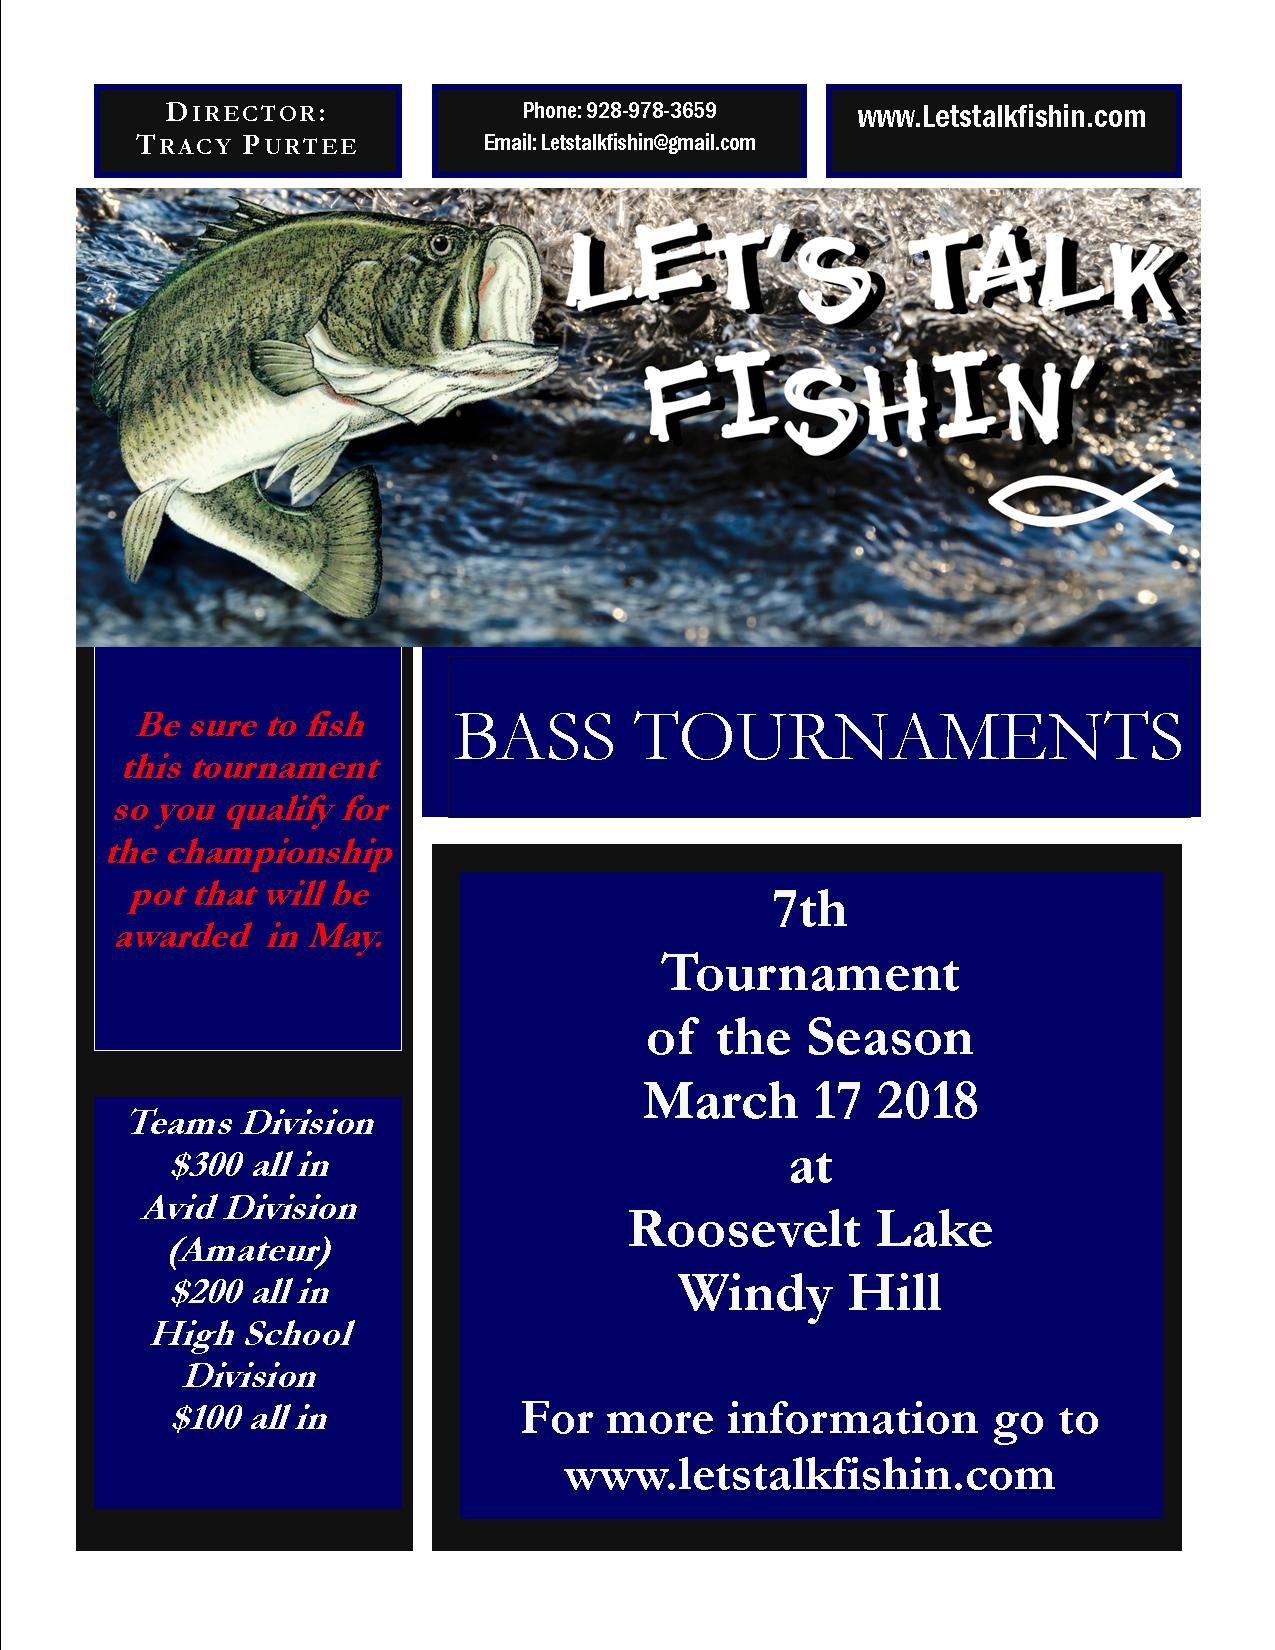 Click image for larger version  Name:7th Tournament.jpg Views:1850 Size:283.6 KB ID:96826